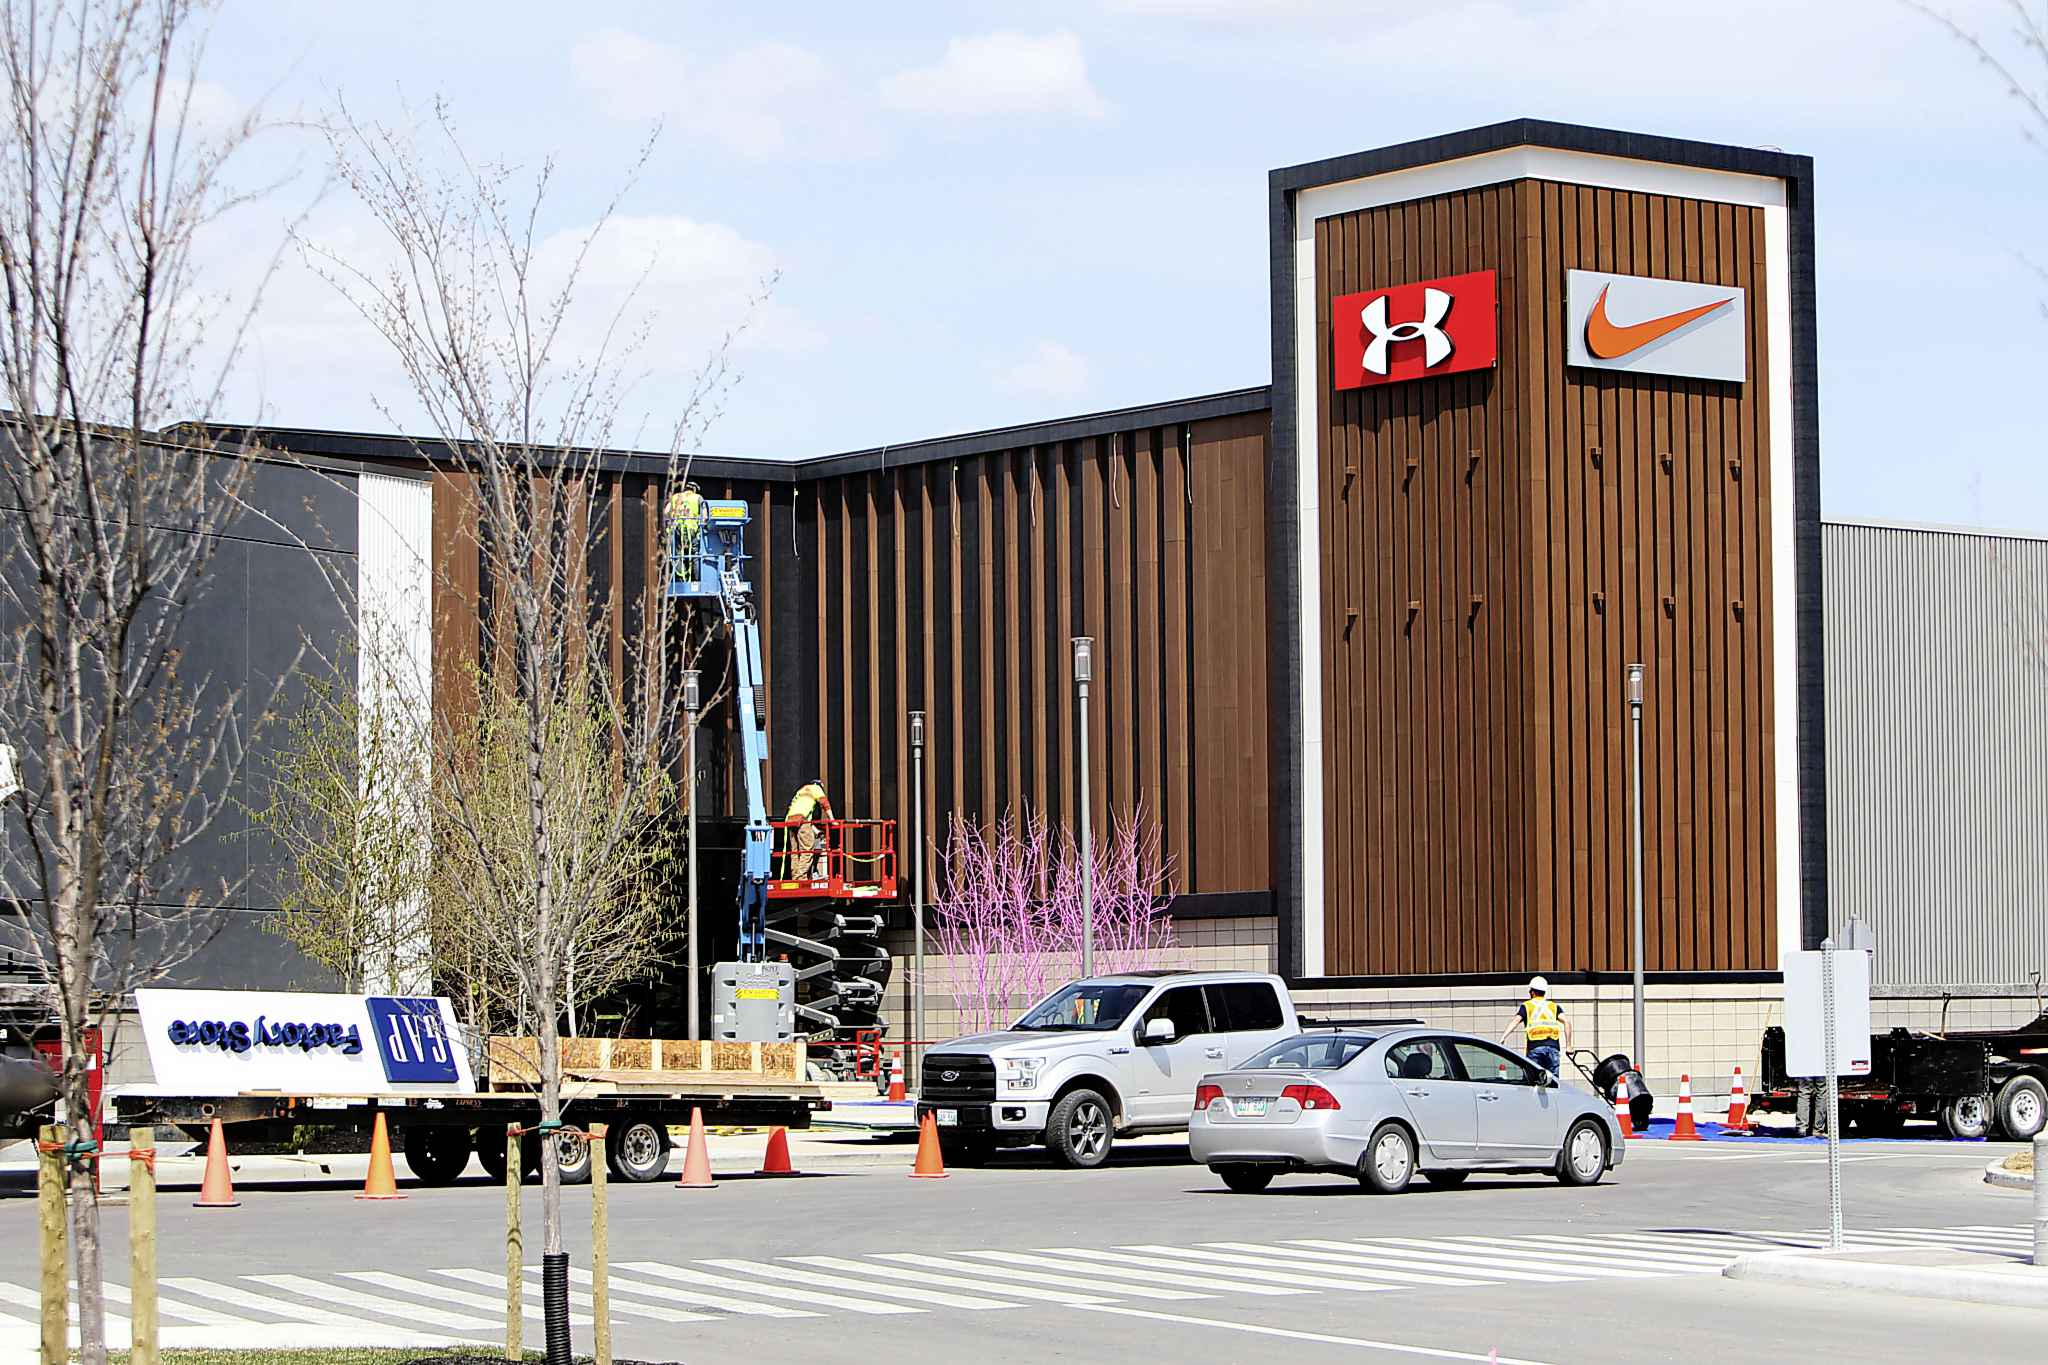 Workers put the final touches to the facade of the mall that will be the centrepiece of a development that will include a four-star hotel, two car dealerships and apartment complexes at Kenaston Boulevard and Sterling Lyon Parkway.